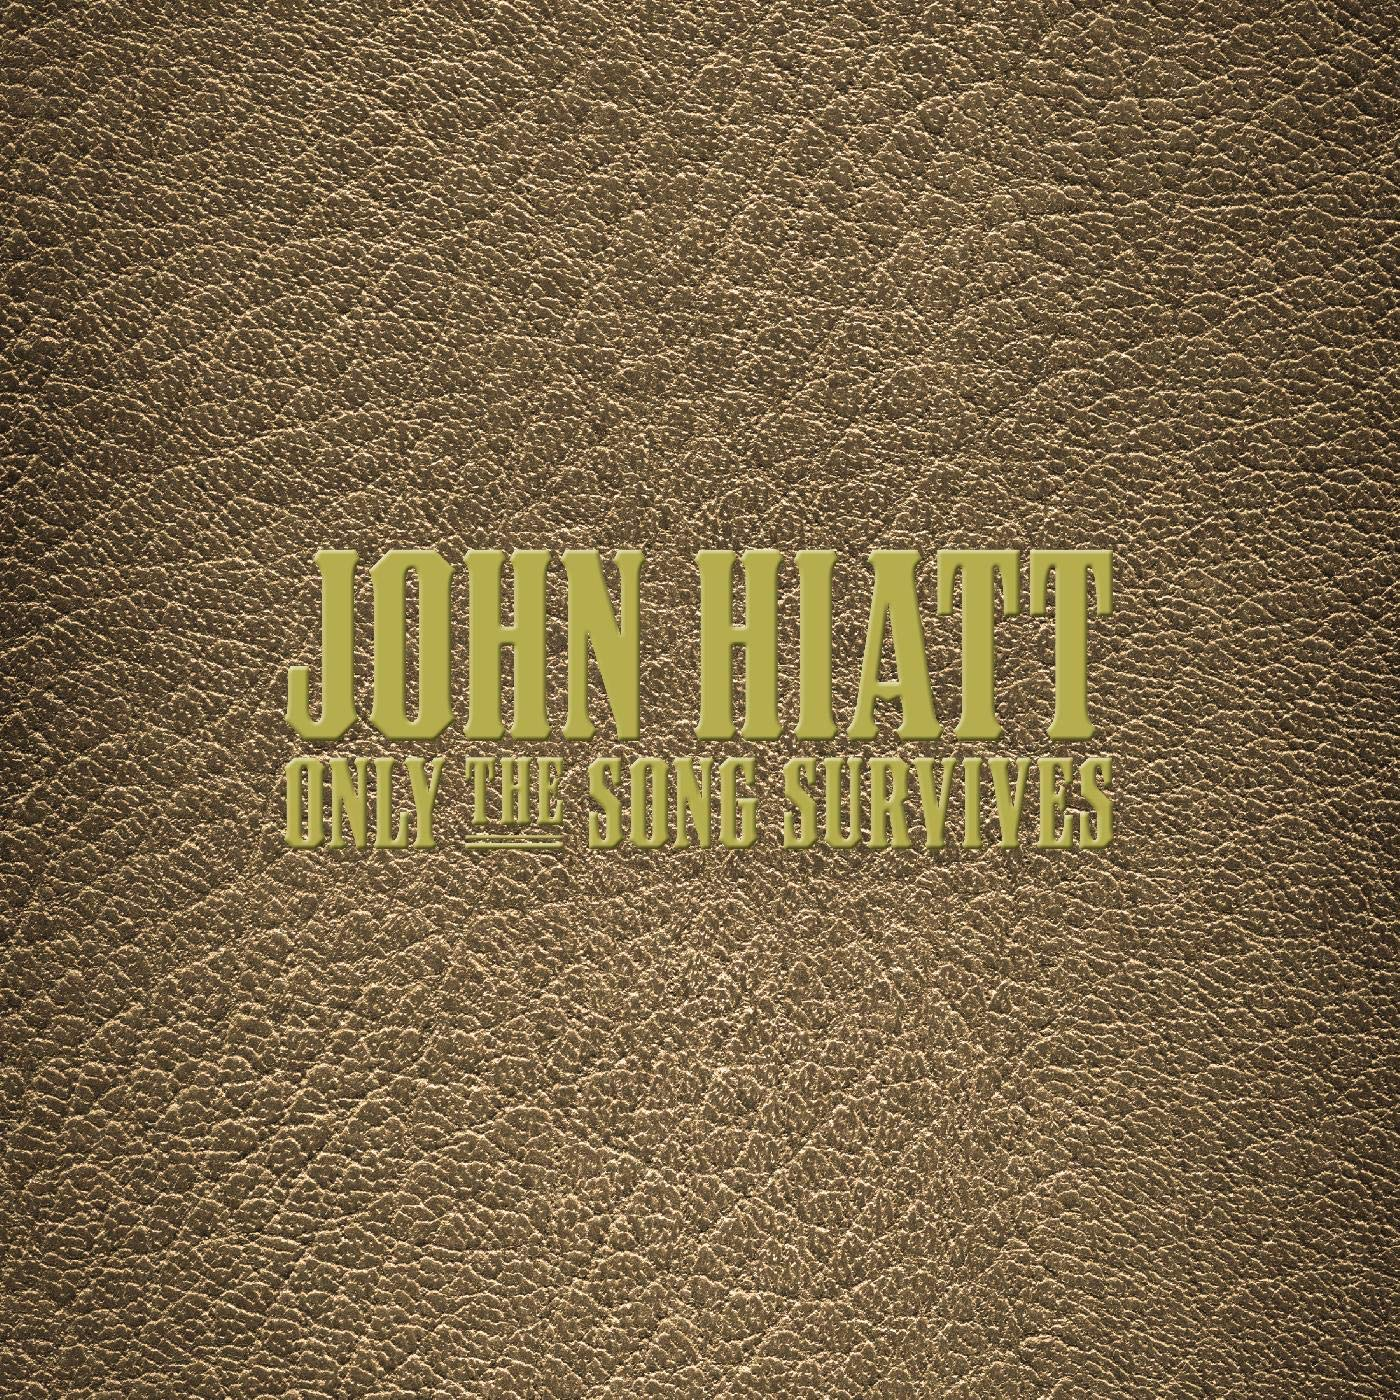 John Hiatt - Only The Song Survives [15 LP Box Set]